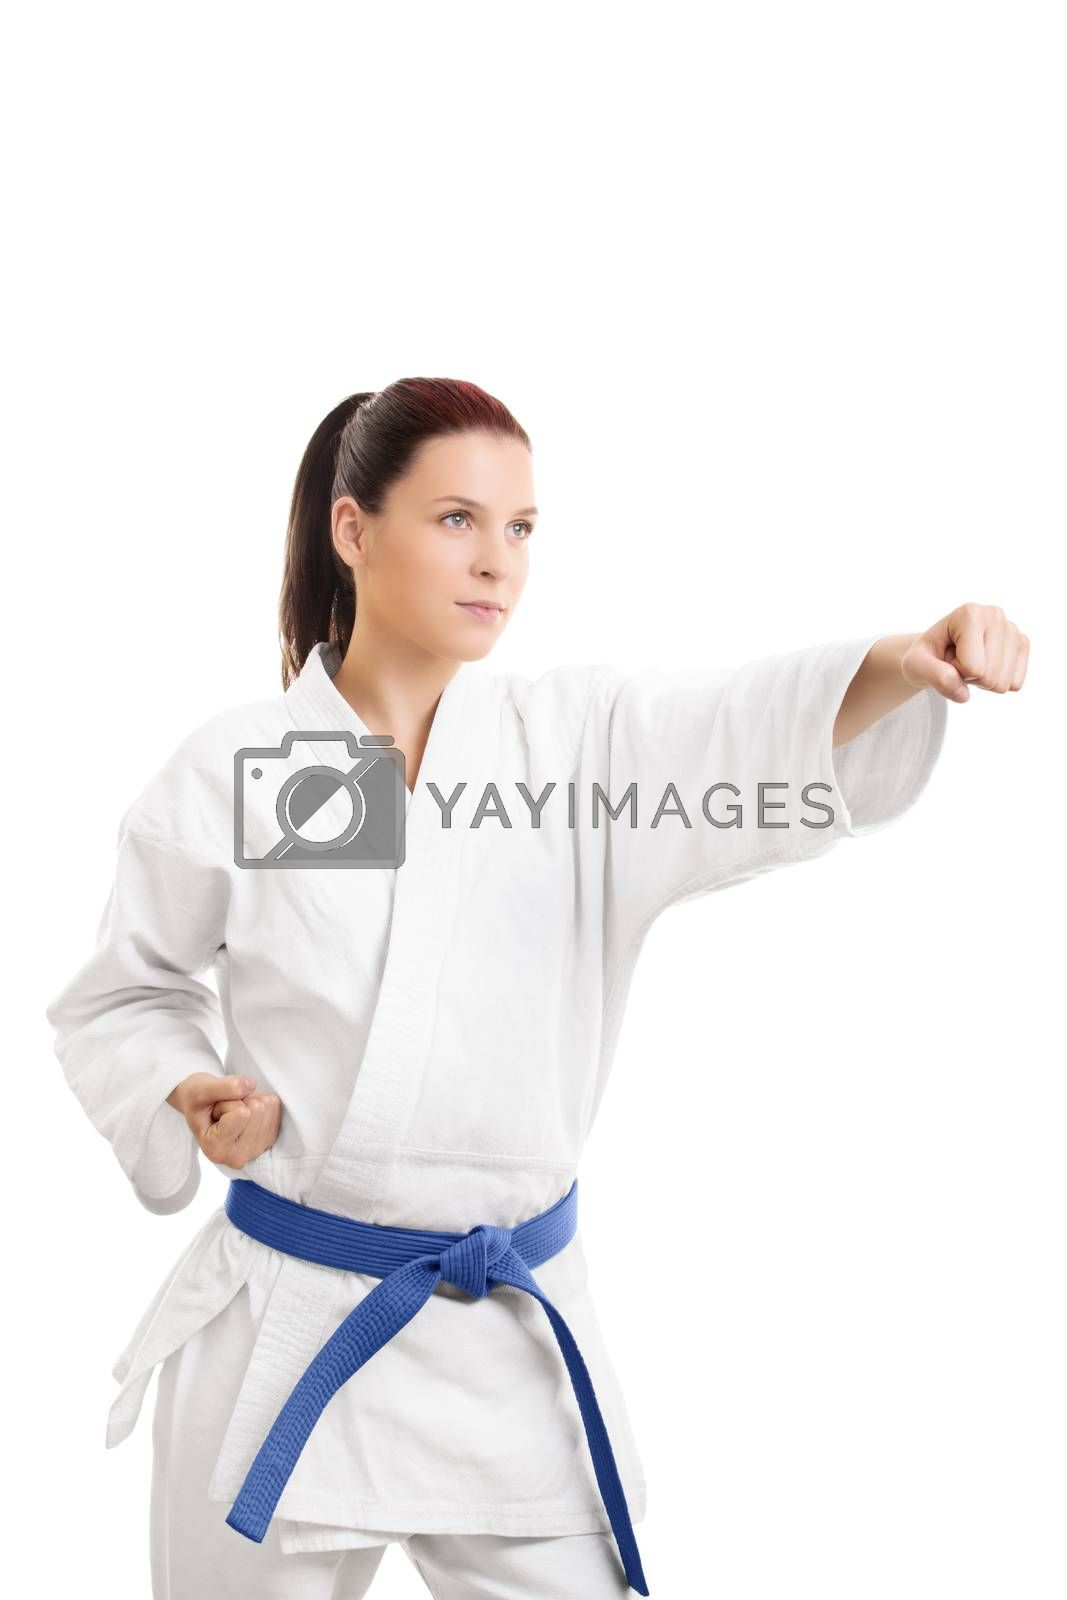 Martial arts concept. Portrait of a beautiful young girl in a kimono with blue belt punching, isolated on white background.